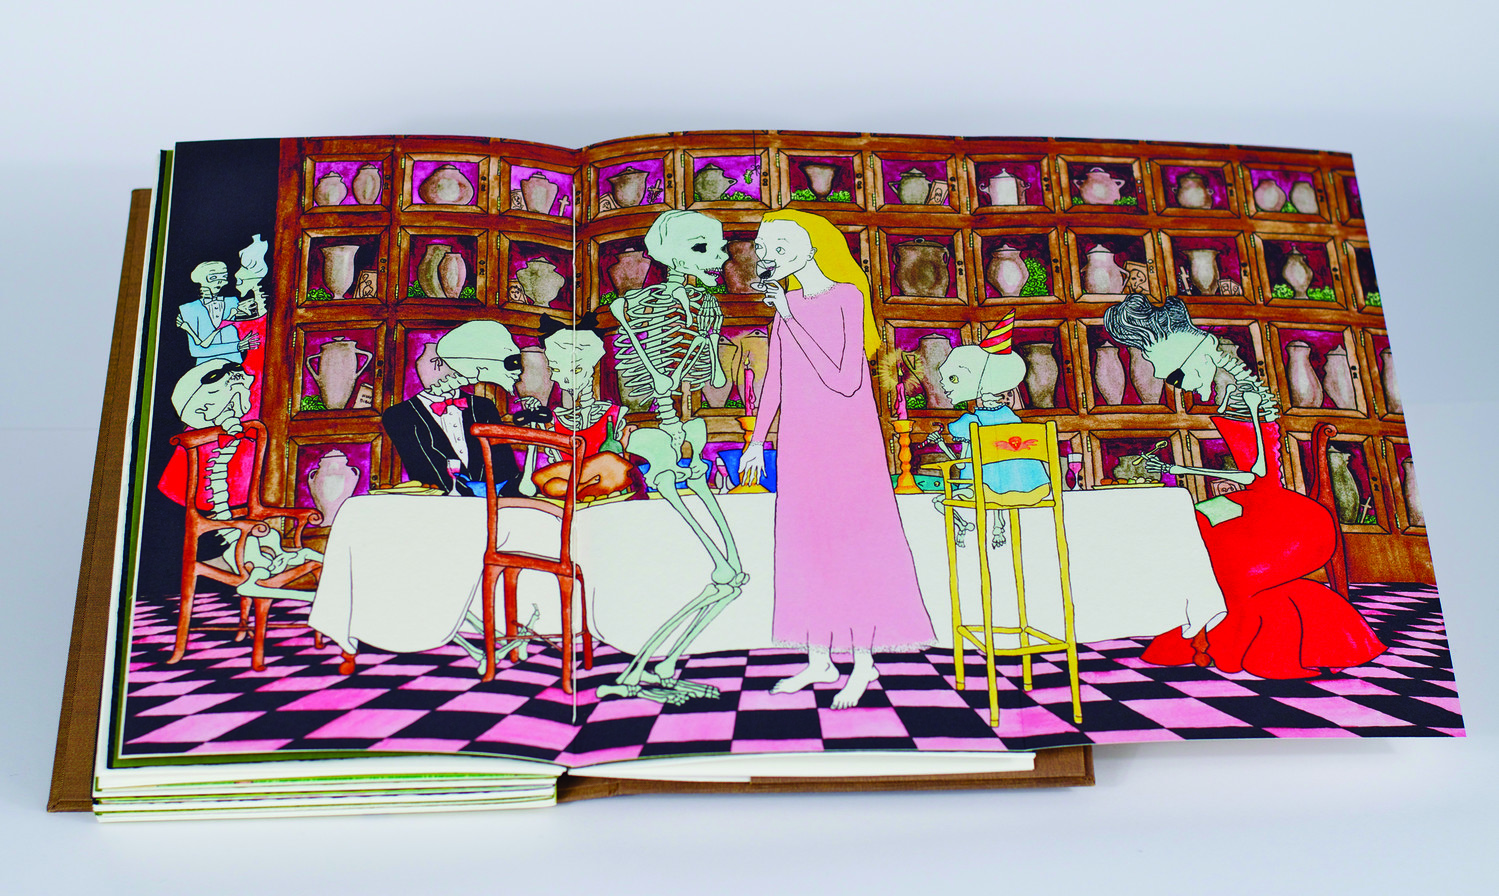 The open page of a book depicts a dinner party, attended by well-dressed skeletons, set in front of shelves of urns. In the foreground, a blonde woman wears a long, pink dress and sips red wine, engaging in conversation with a skeleton.